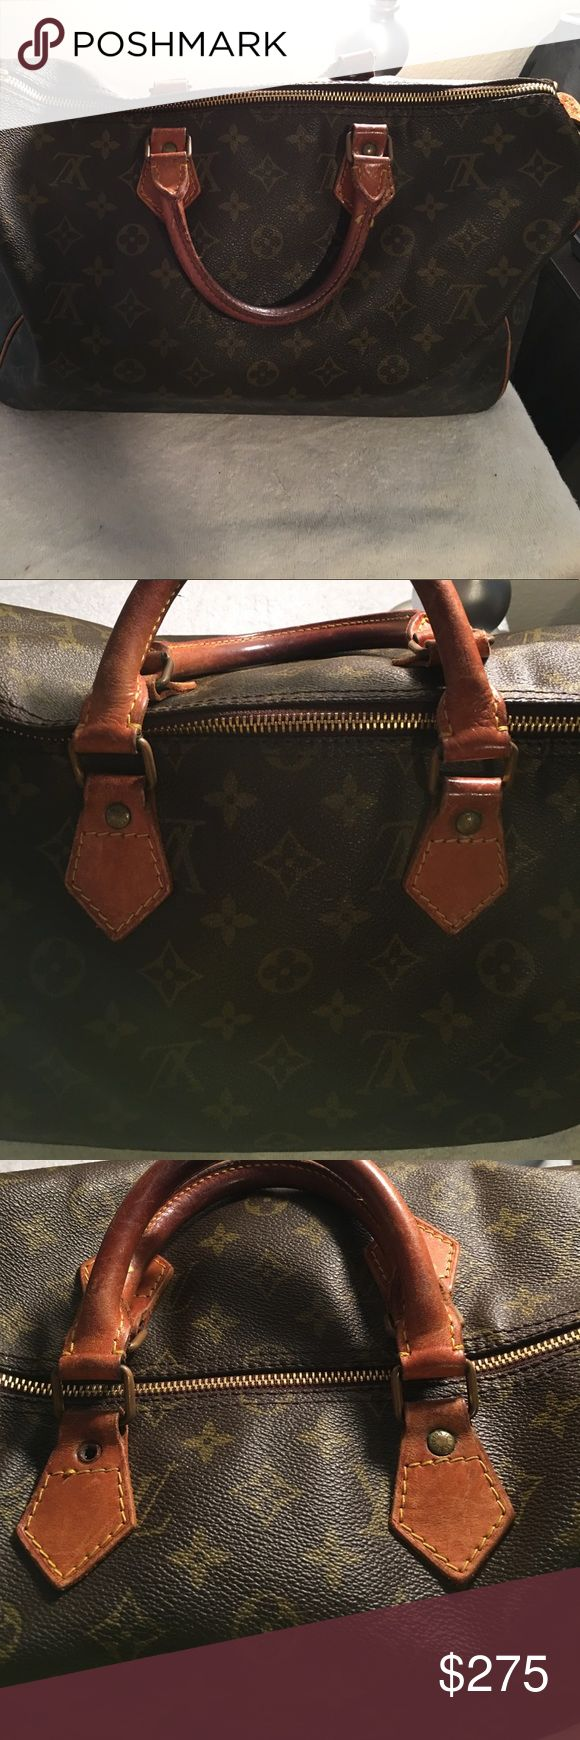 Authentic Louis Vuitton Speedy 40 The bag is an old one, but has been well taken care of and still looks great! Holds a lot of stuff. There is a button missing off of one of the handles, can be replaced. 🔴🔴PRICE IS FIRM🔴🔴 The handle still works🔴🔴 Louis Vuitton Bags Hobos